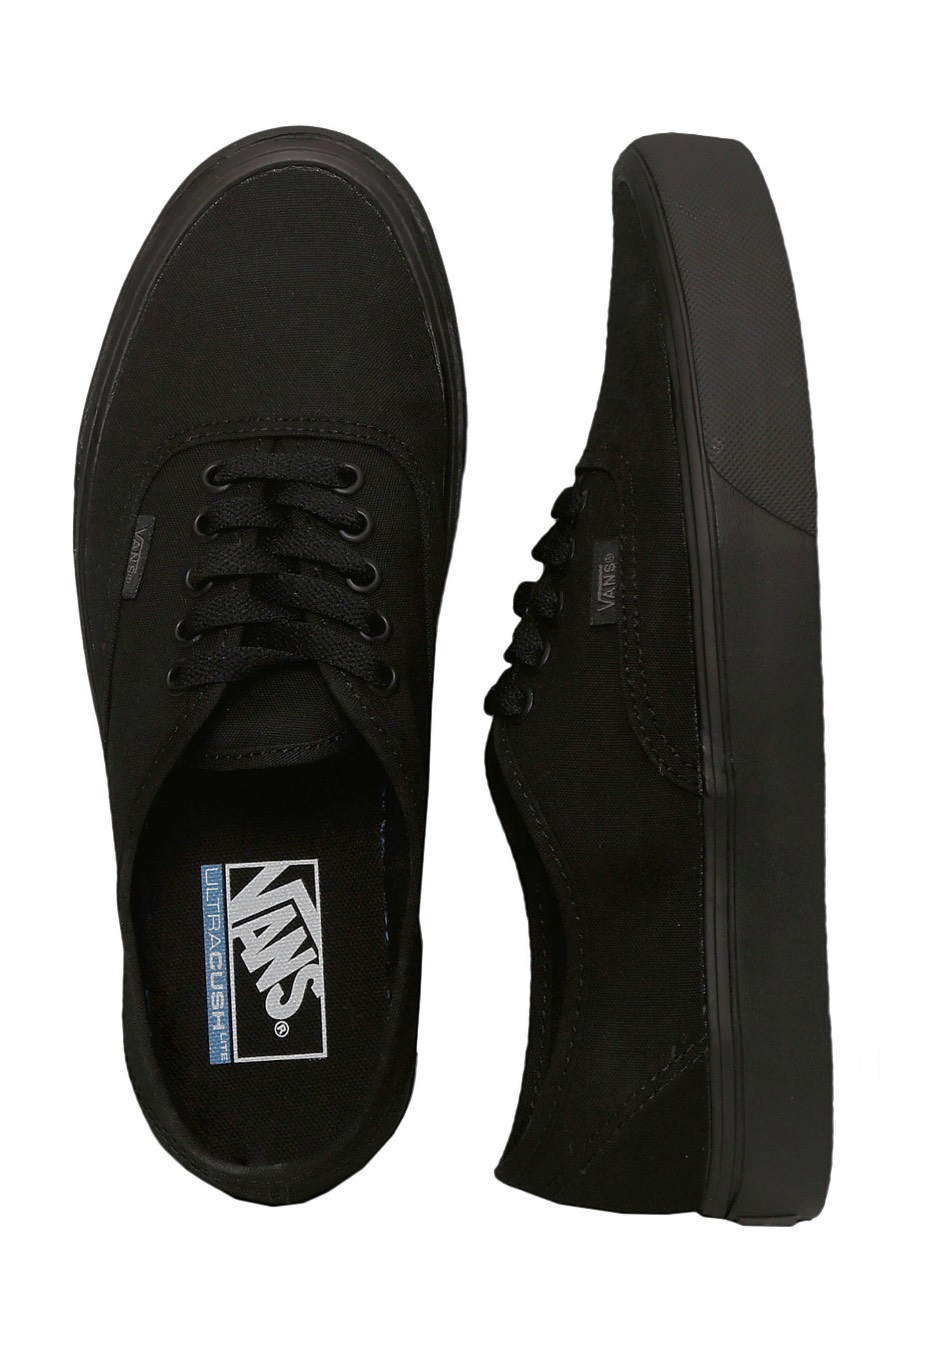 Vans - Authentic Lite Canvas Black/Black - Schuhe